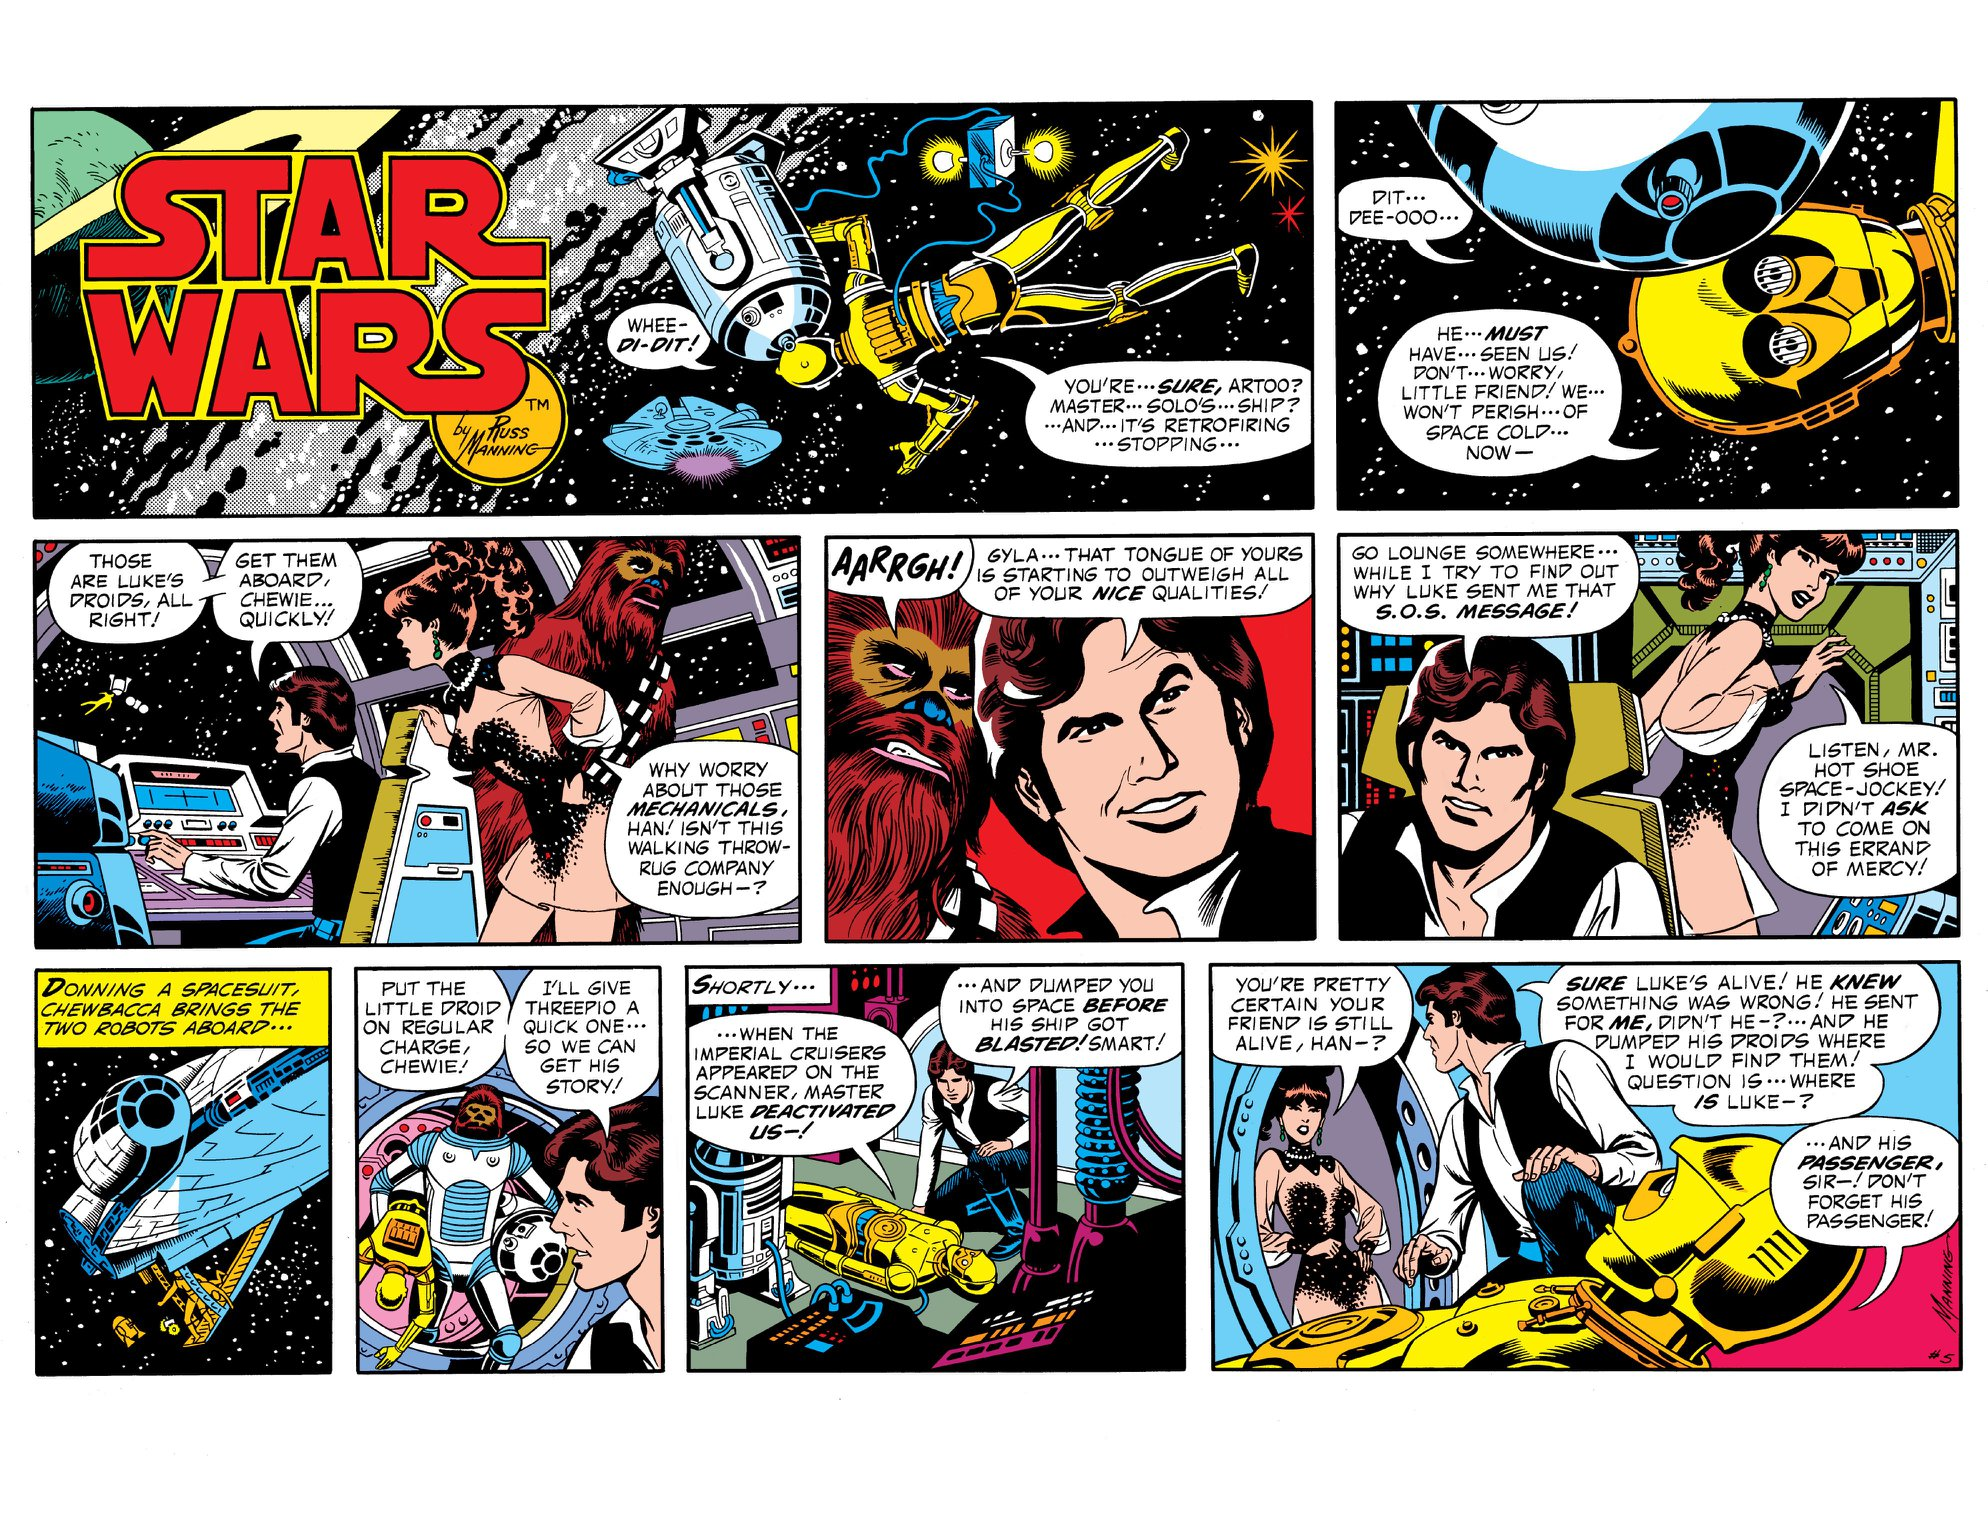 Star Wars LA Times Comic April 08, 1979